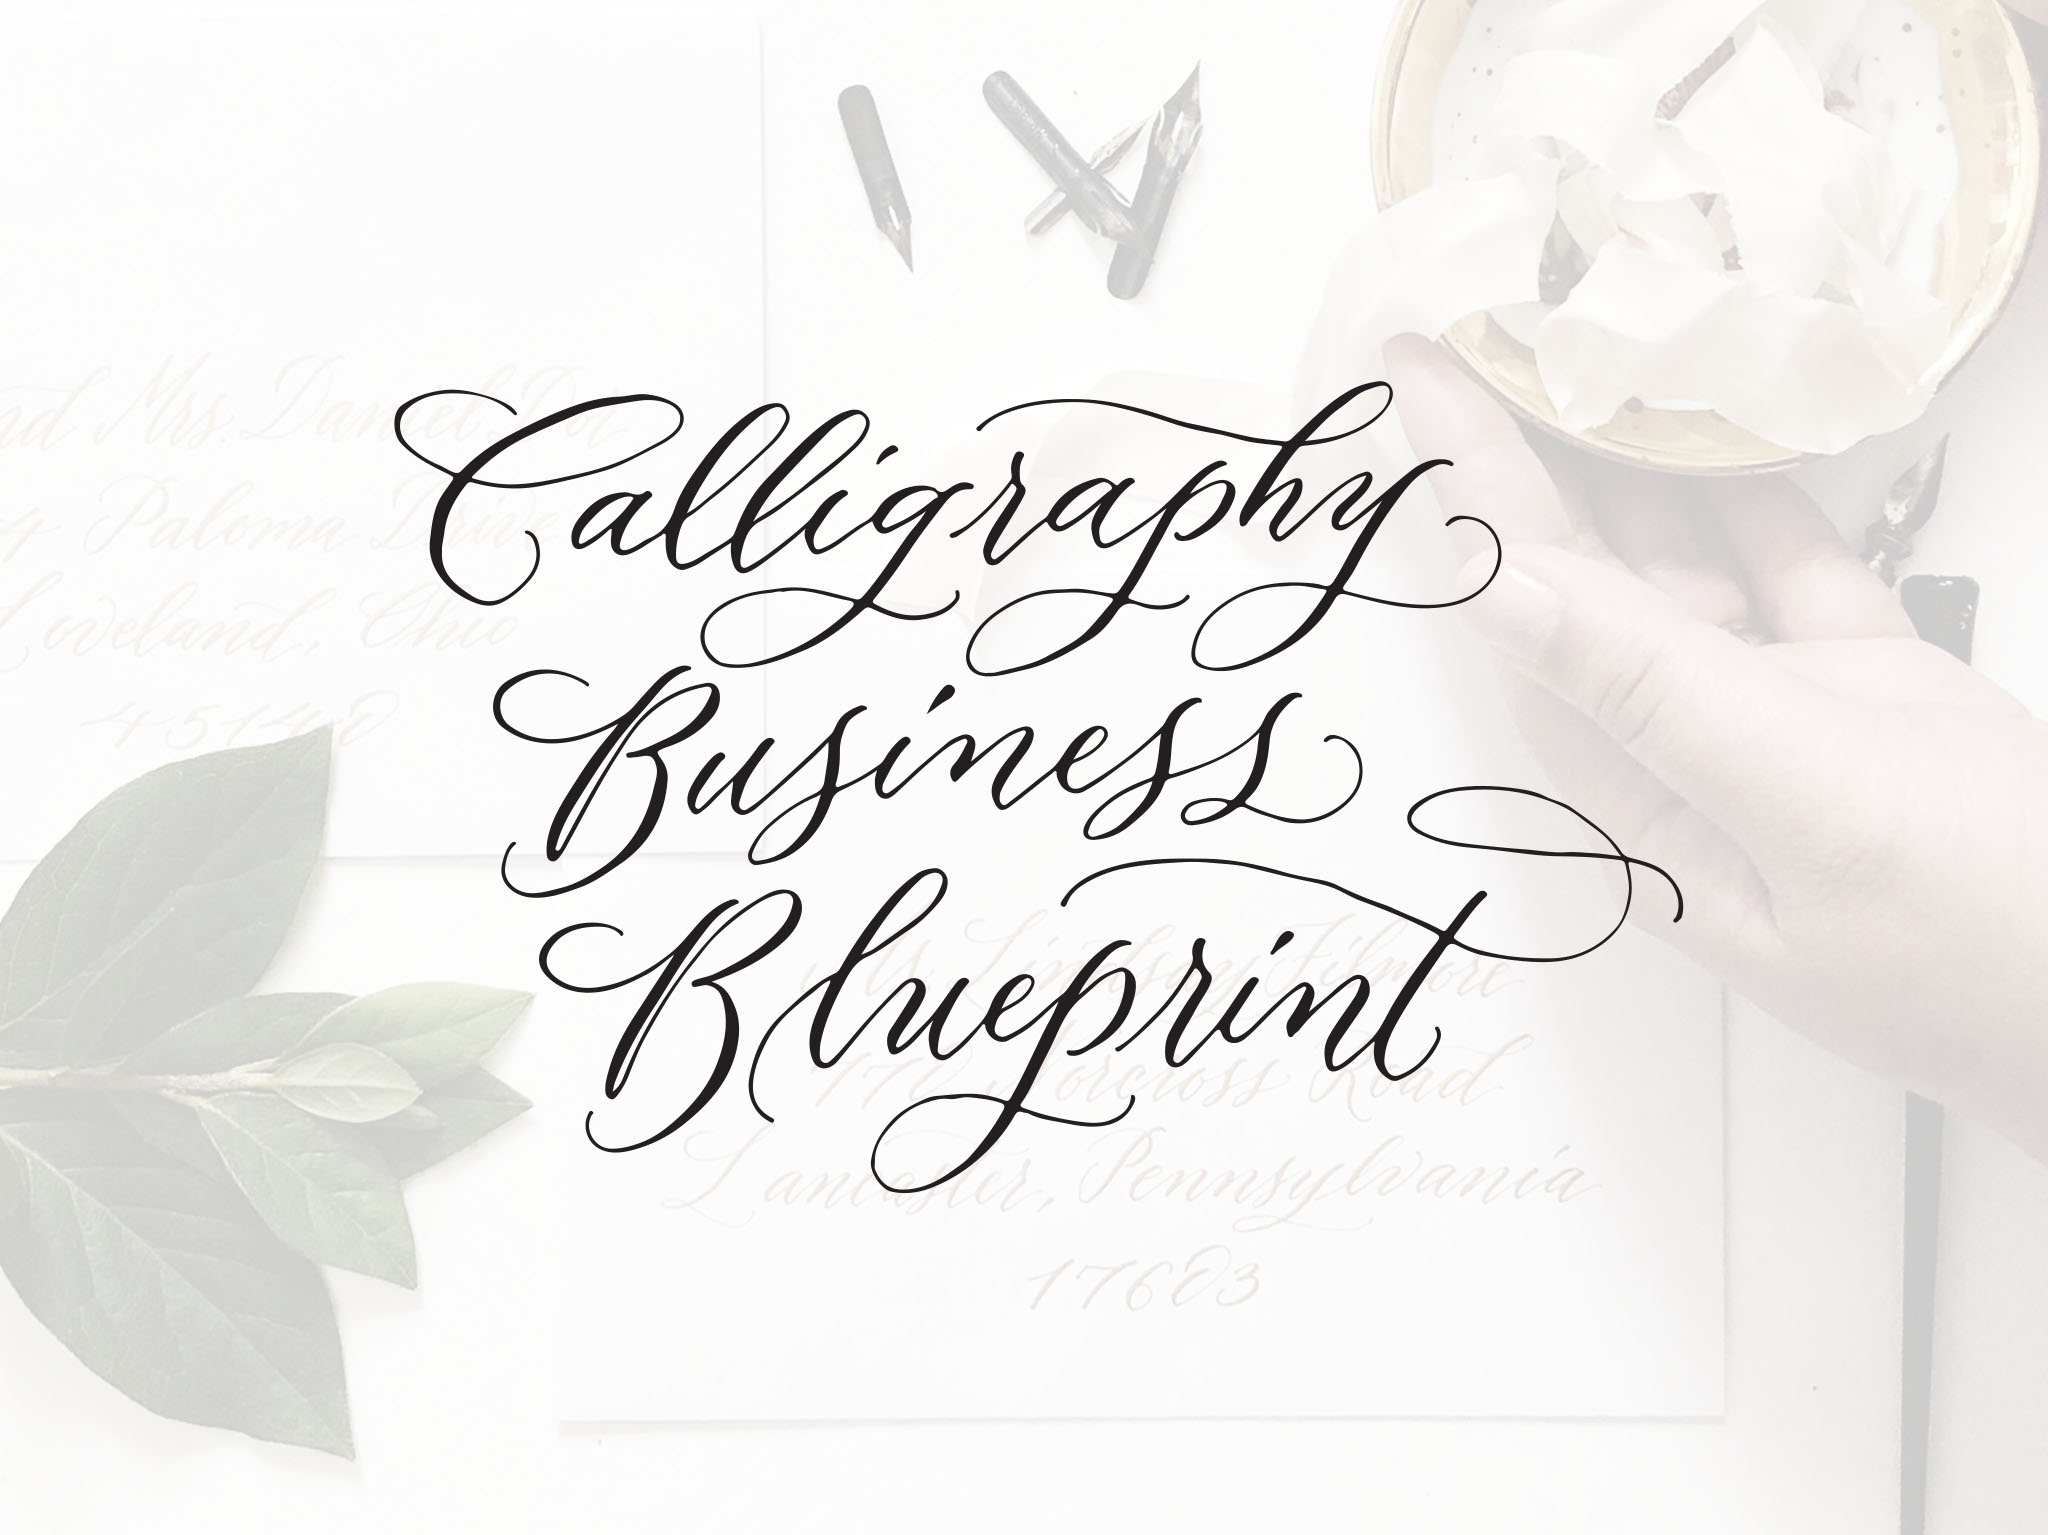 calligraphy business blueprint.jpg